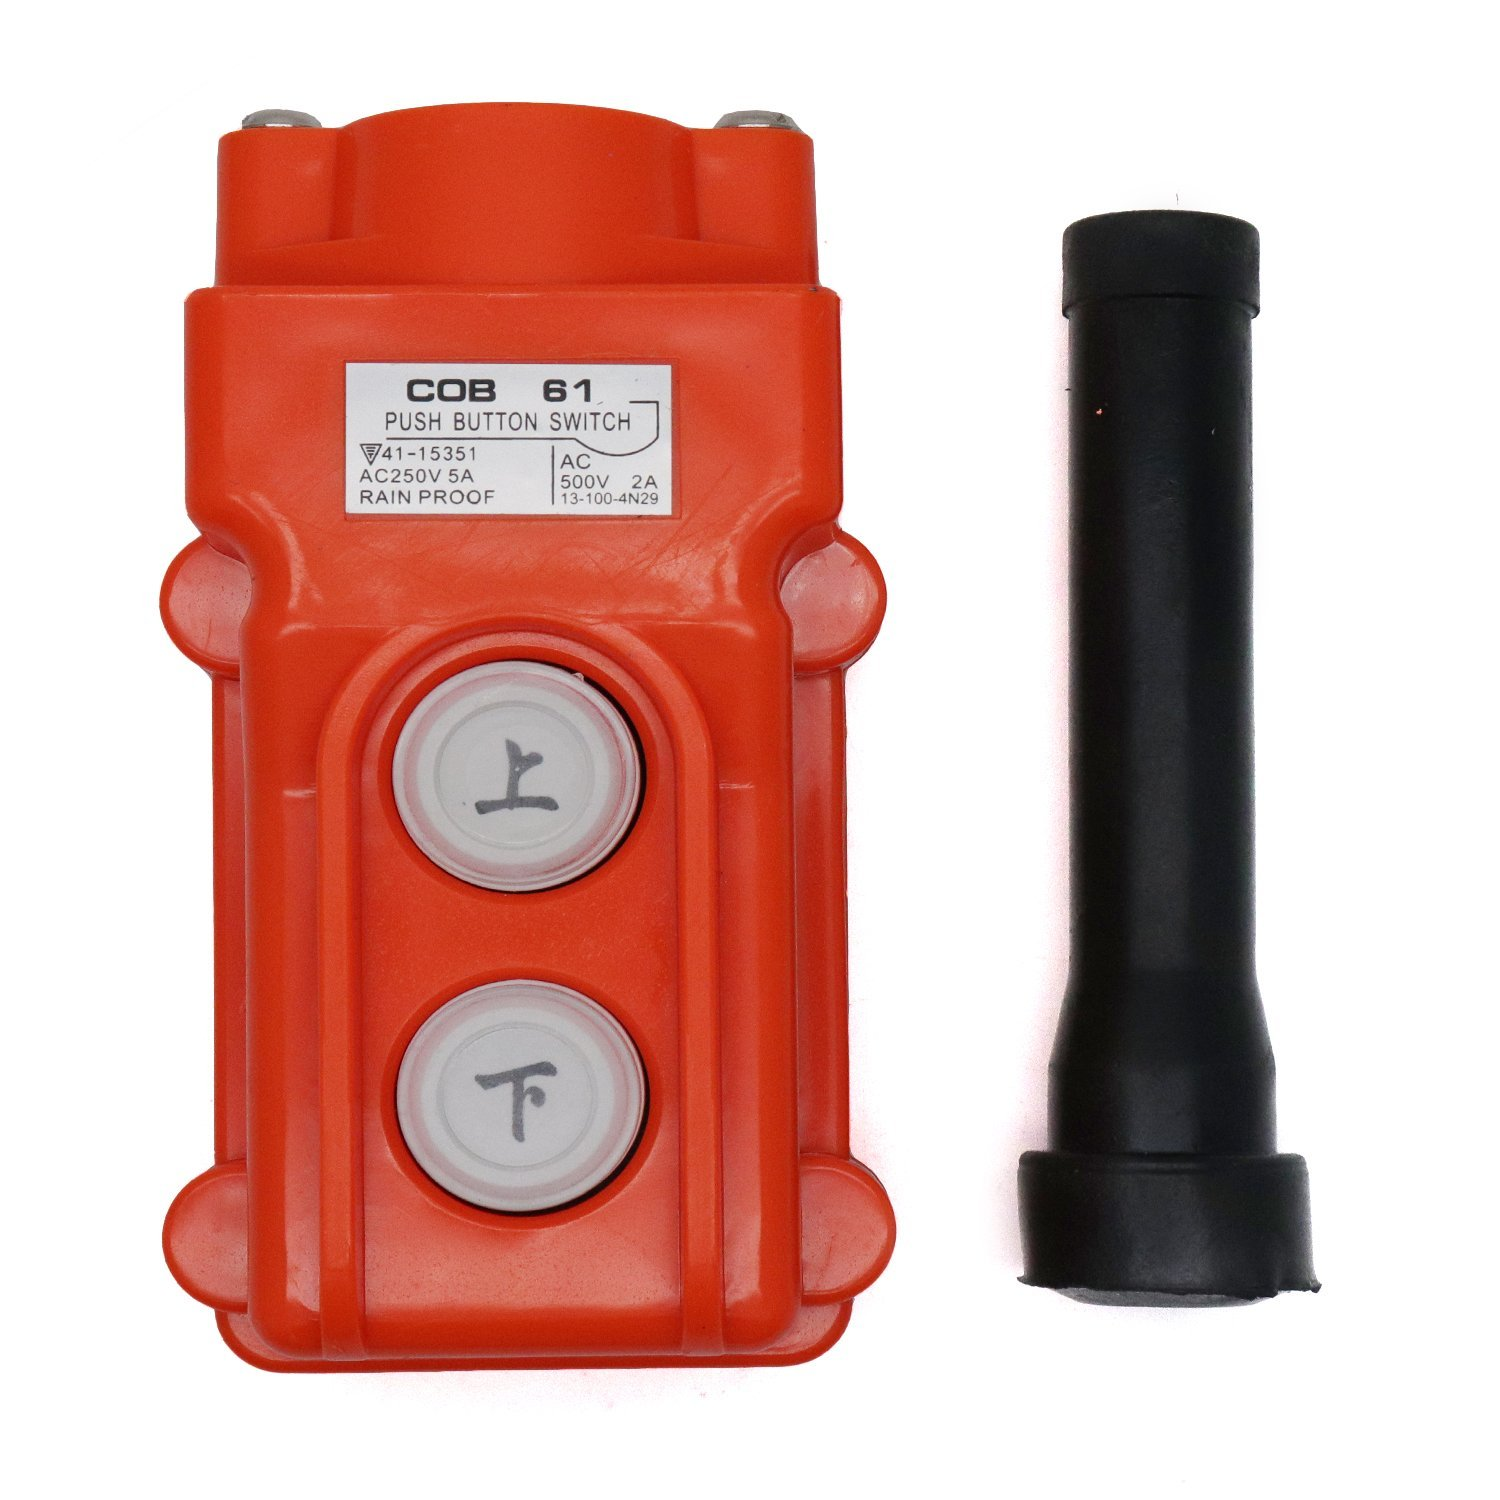 yootop rainproof hoist crane pendant controller 2 ways single pole  pushbutton switch up-down station momentary contact type: amazon com:  industrial &